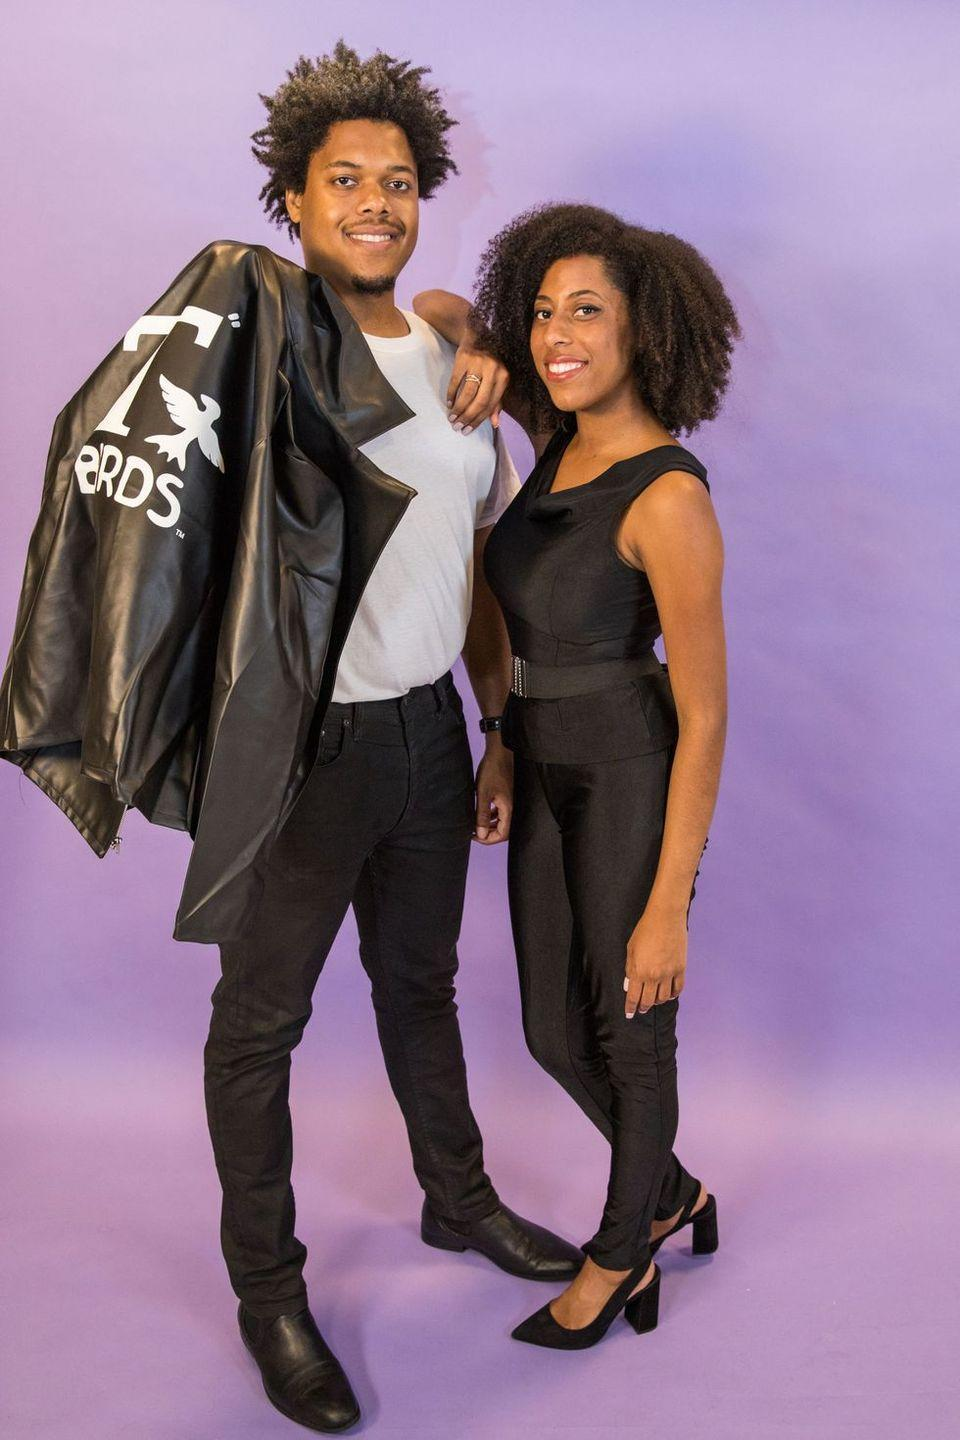 """<p>Nothing says """"Summer Lovin'"""" on a chilly October night like Danny and Sandy's classic ensembles. Luckily, this costume combines several closet staples — black leggings, leather jackets, and patent shoes — so you'll have no trouble pulling it together.</p><p><a class=""""link rapid-noclick-resp"""" href=""""https://www.amazon.com/Womens-Tight-Leather-Waisted-Leggings/dp/B07HS3HT6K/ref=sr_1_16?dchild=1&keywords=leather+leggings&psc=1&qid=1571412861&sr=8-16&tag=syn-yahoo-20&ascsubtag=%5Bartid%7C10055.g.29516206%5Bsrc%7Cyahoo-us"""" rel=""""nofollow noopener"""" target=""""_blank"""" data-ylk=""""slk:SHOP LEGGINGS"""">SHOP LEGGINGS</a></p><p><a class=""""link rapid-noclick-resp"""" href=""""https://www.amazon.com/MAGE-MALE-Leather-Motorcycle-Lightweight/dp/B07F2CWMBD/ref=sr_1_52?dchild=1&keywords=t-birds+jacket&psc=1&qid=1571412909&sr=8-52&tag=syn-yahoo-20&ascsubtag=%5Bartid%7C10055.g.29516206%5Bsrc%7Cyahoo-us"""" rel=""""nofollow noopener"""" target=""""_blank"""" data-ylk=""""slk:SHOP FAUX LEATHER JACKETS"""">SHOP FAUX LEATHER JACKETS</a></p><p><strong>RELATED: </strong><a href=""""https://www.goodhousekeeping.com/holidays/halloween-ideas/g2625/halloween-costumes-for-couples/"""" rel=""""nofollow noopener"""" target=""""_blank"""" data-ylk=""""slk:These Couples Costumes Will Win Halloween"""" class=""""link rapid-noclick-resp"""">These Couples Costumes Will Win Halloween</a></p>"""